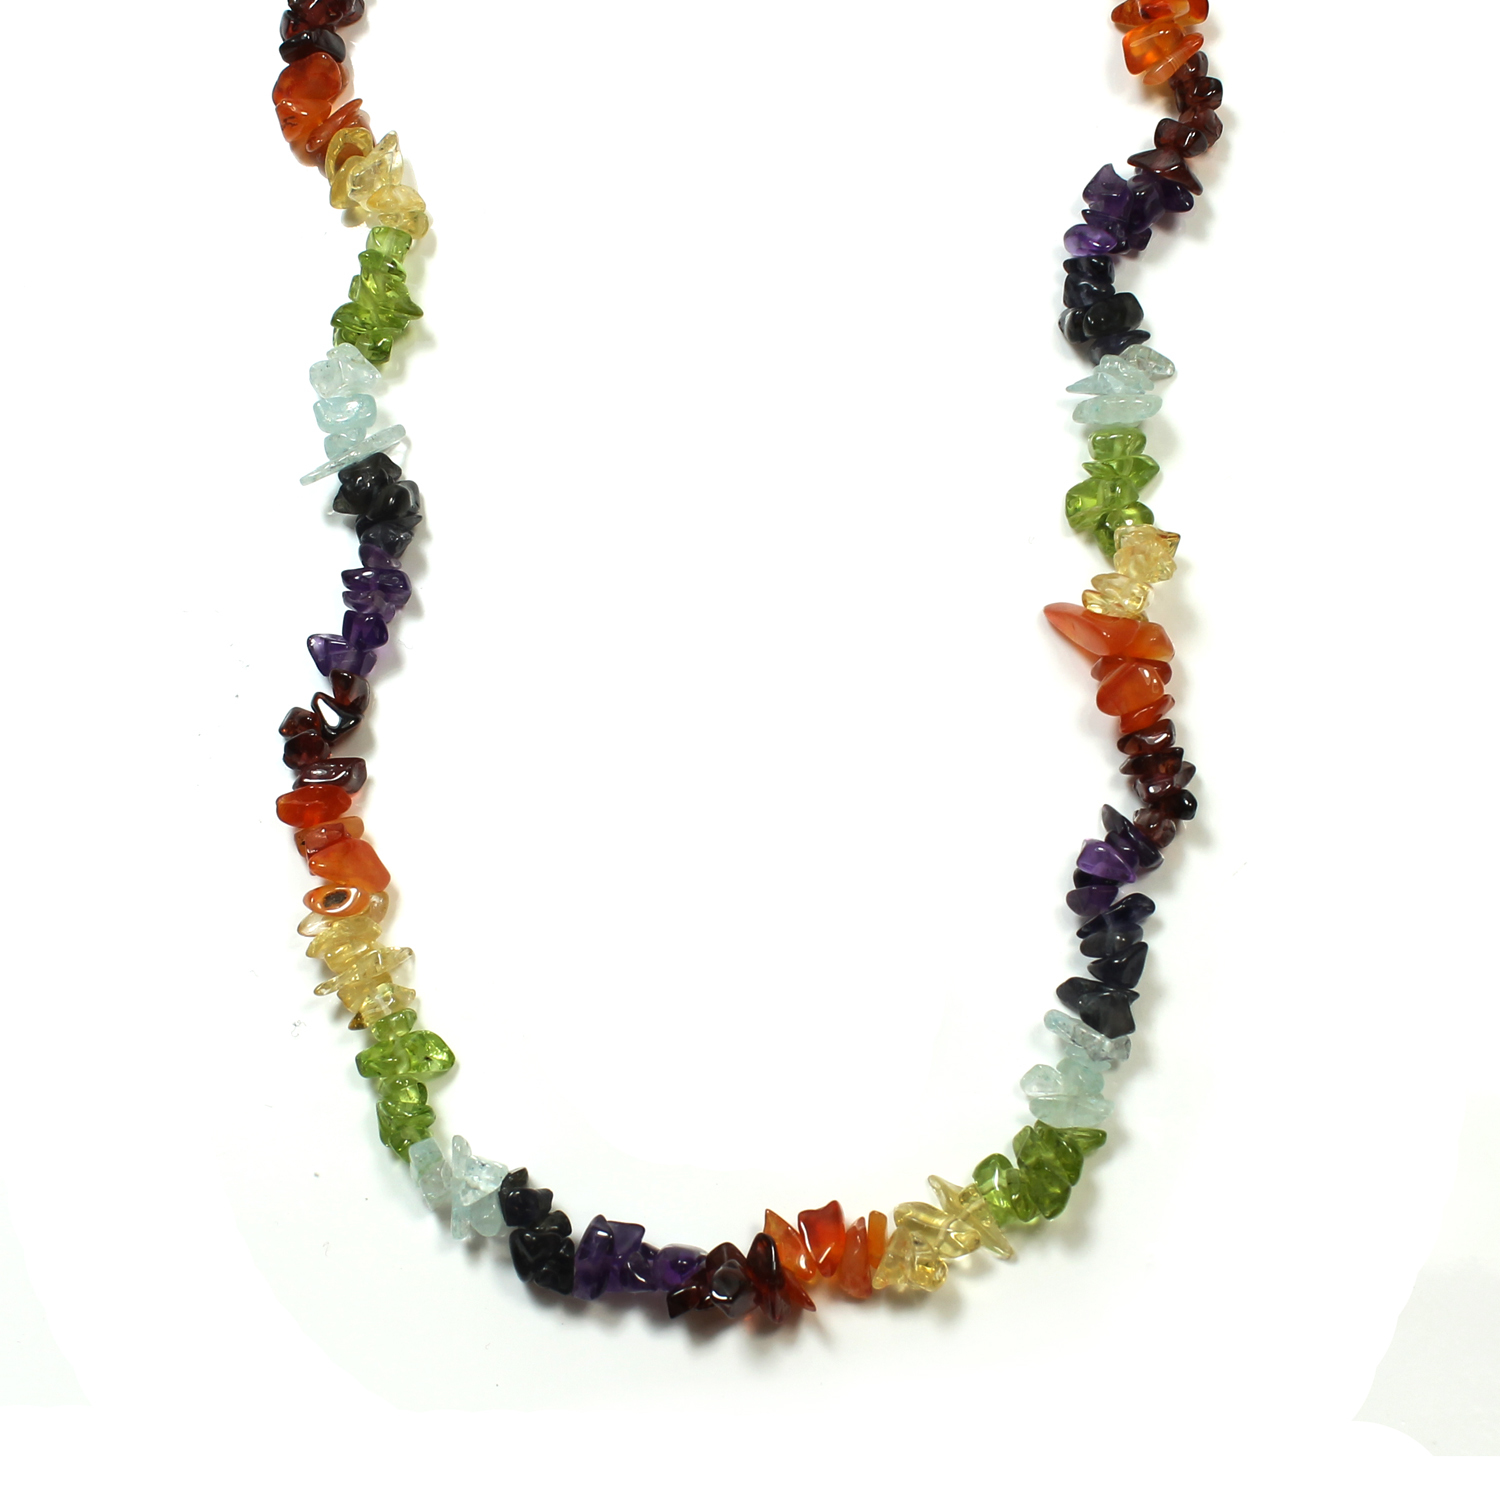 Chakra Gemstone Chip Necklace with Clasp